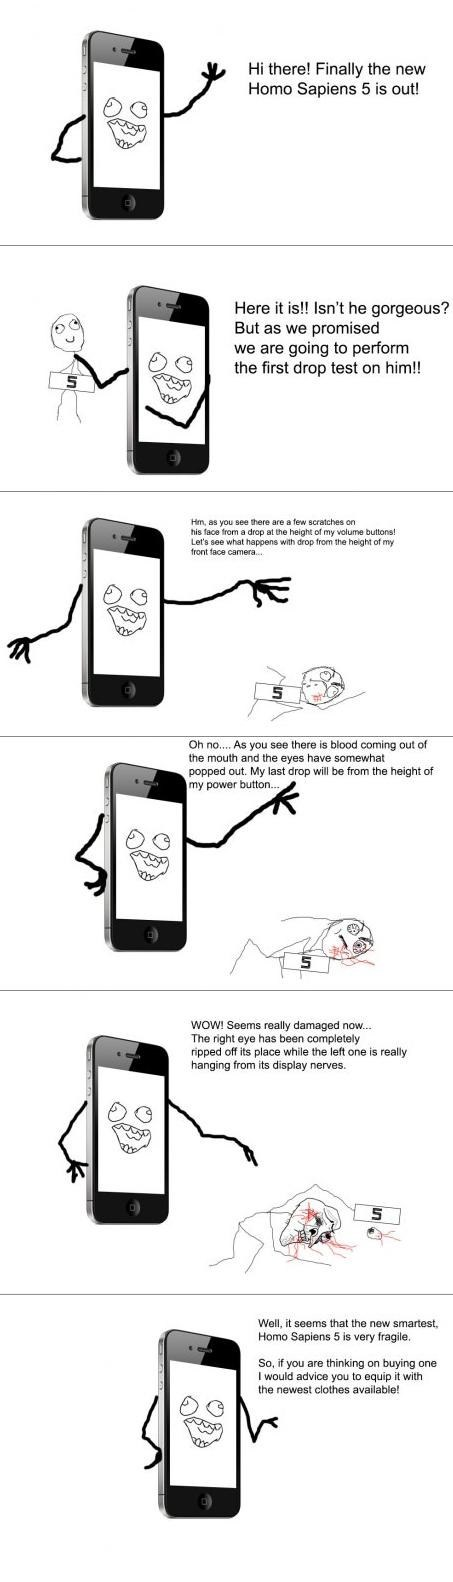 put it that way homo sapiens iphone 5 switched - 6674918144